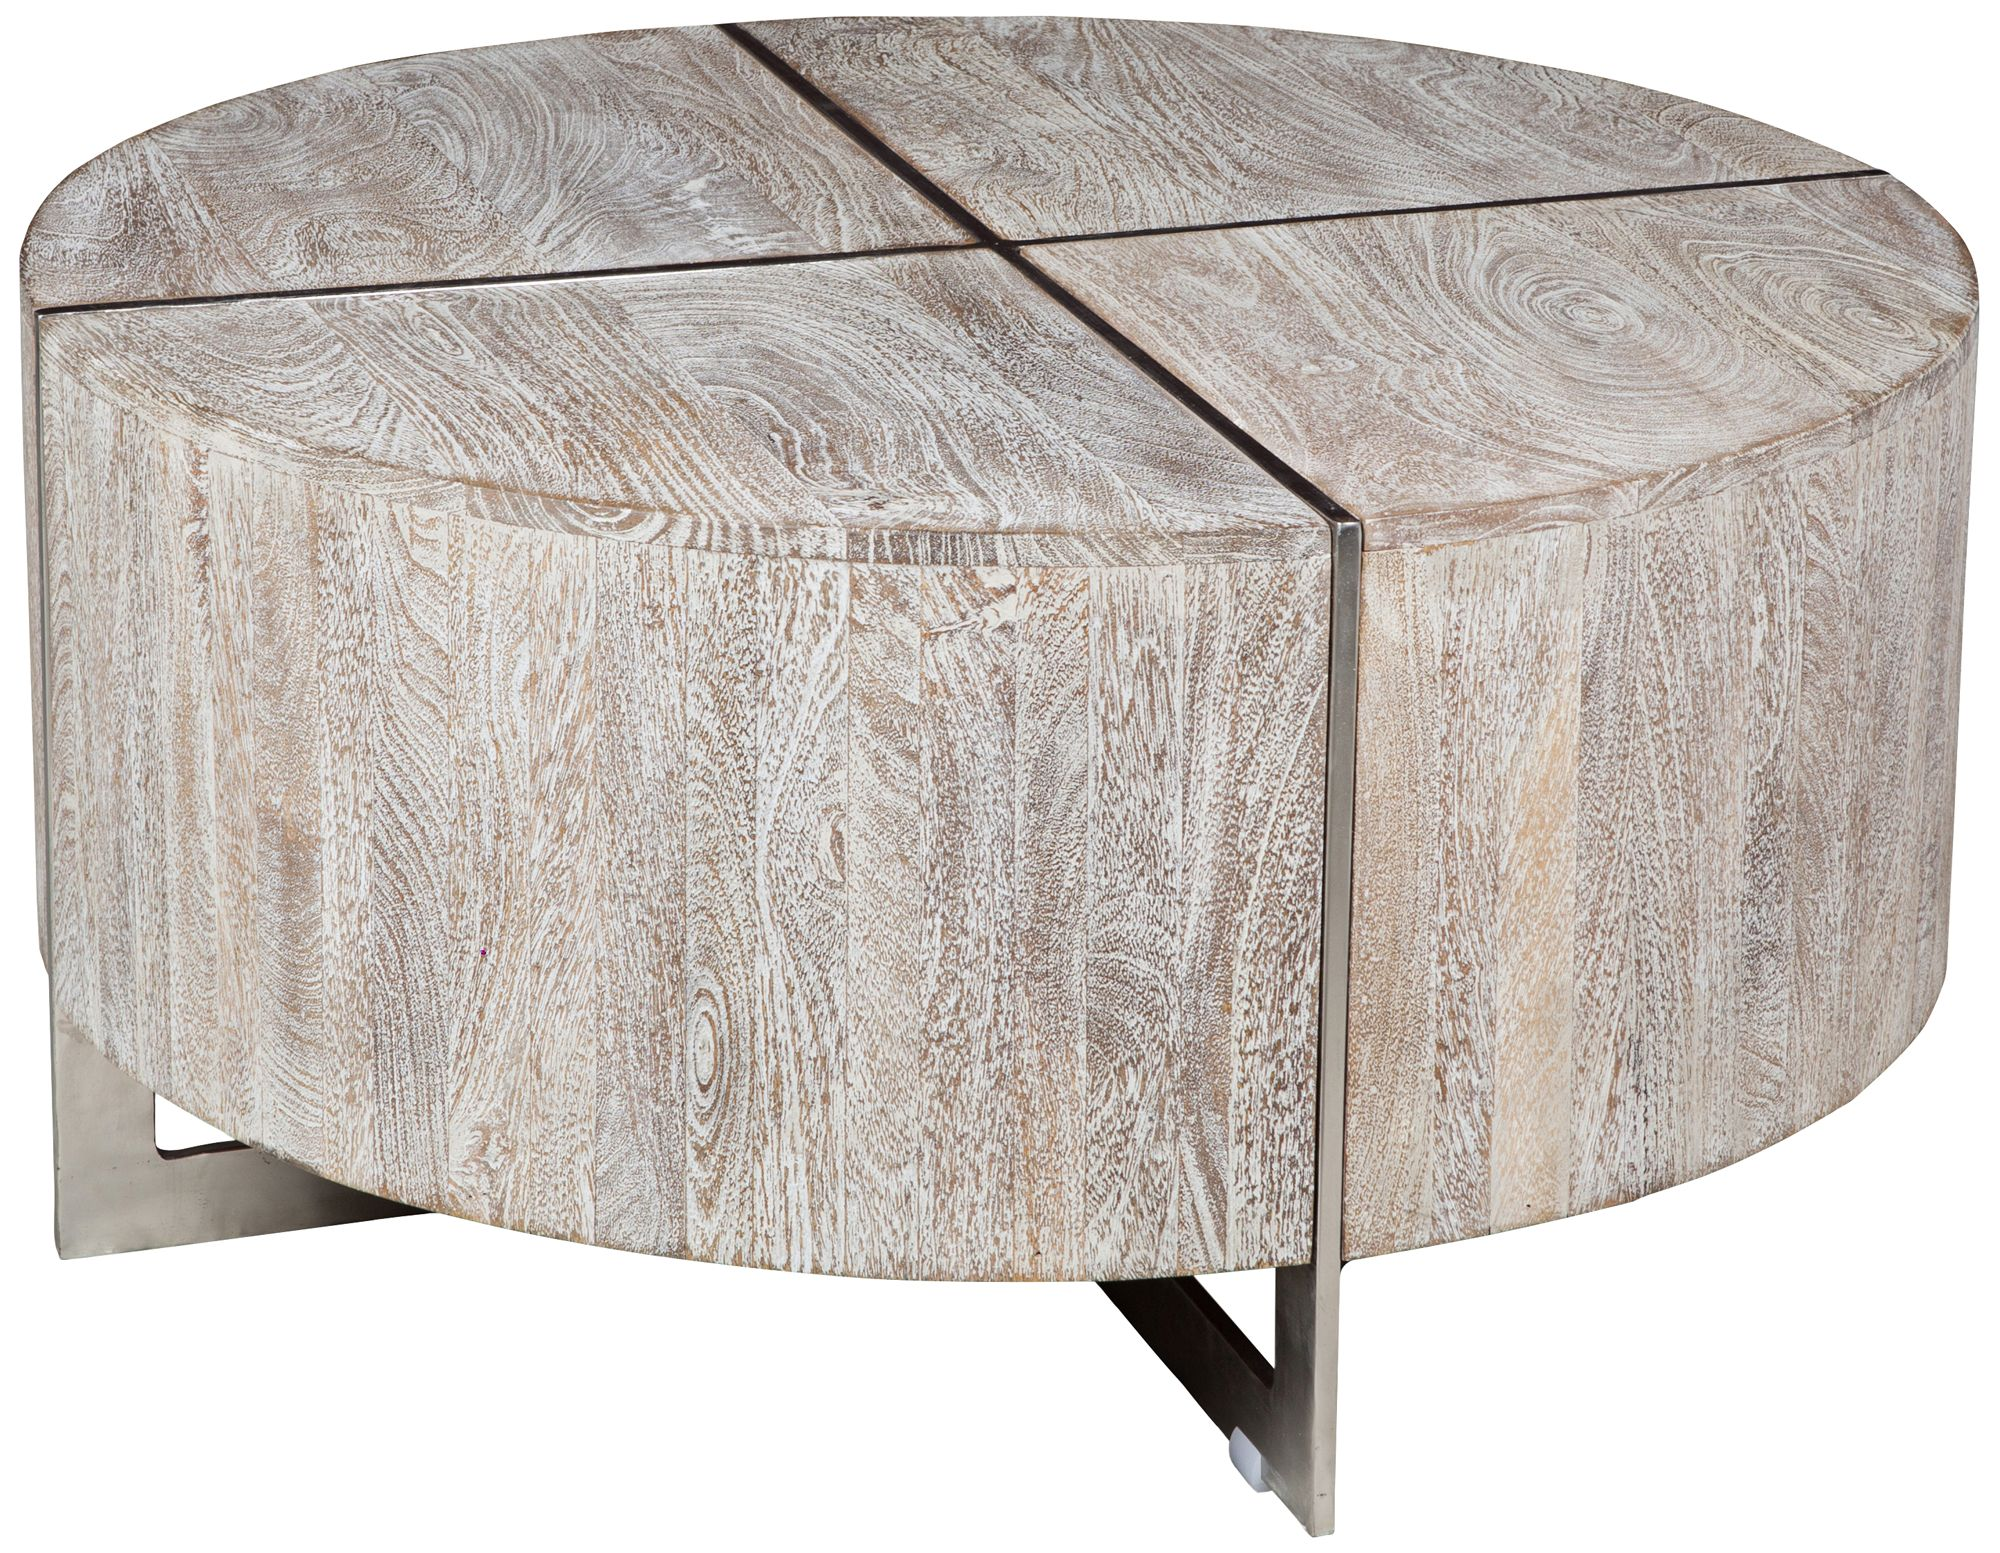 Wonderful Desmond Hand Distressed Wood Round Coffee Table